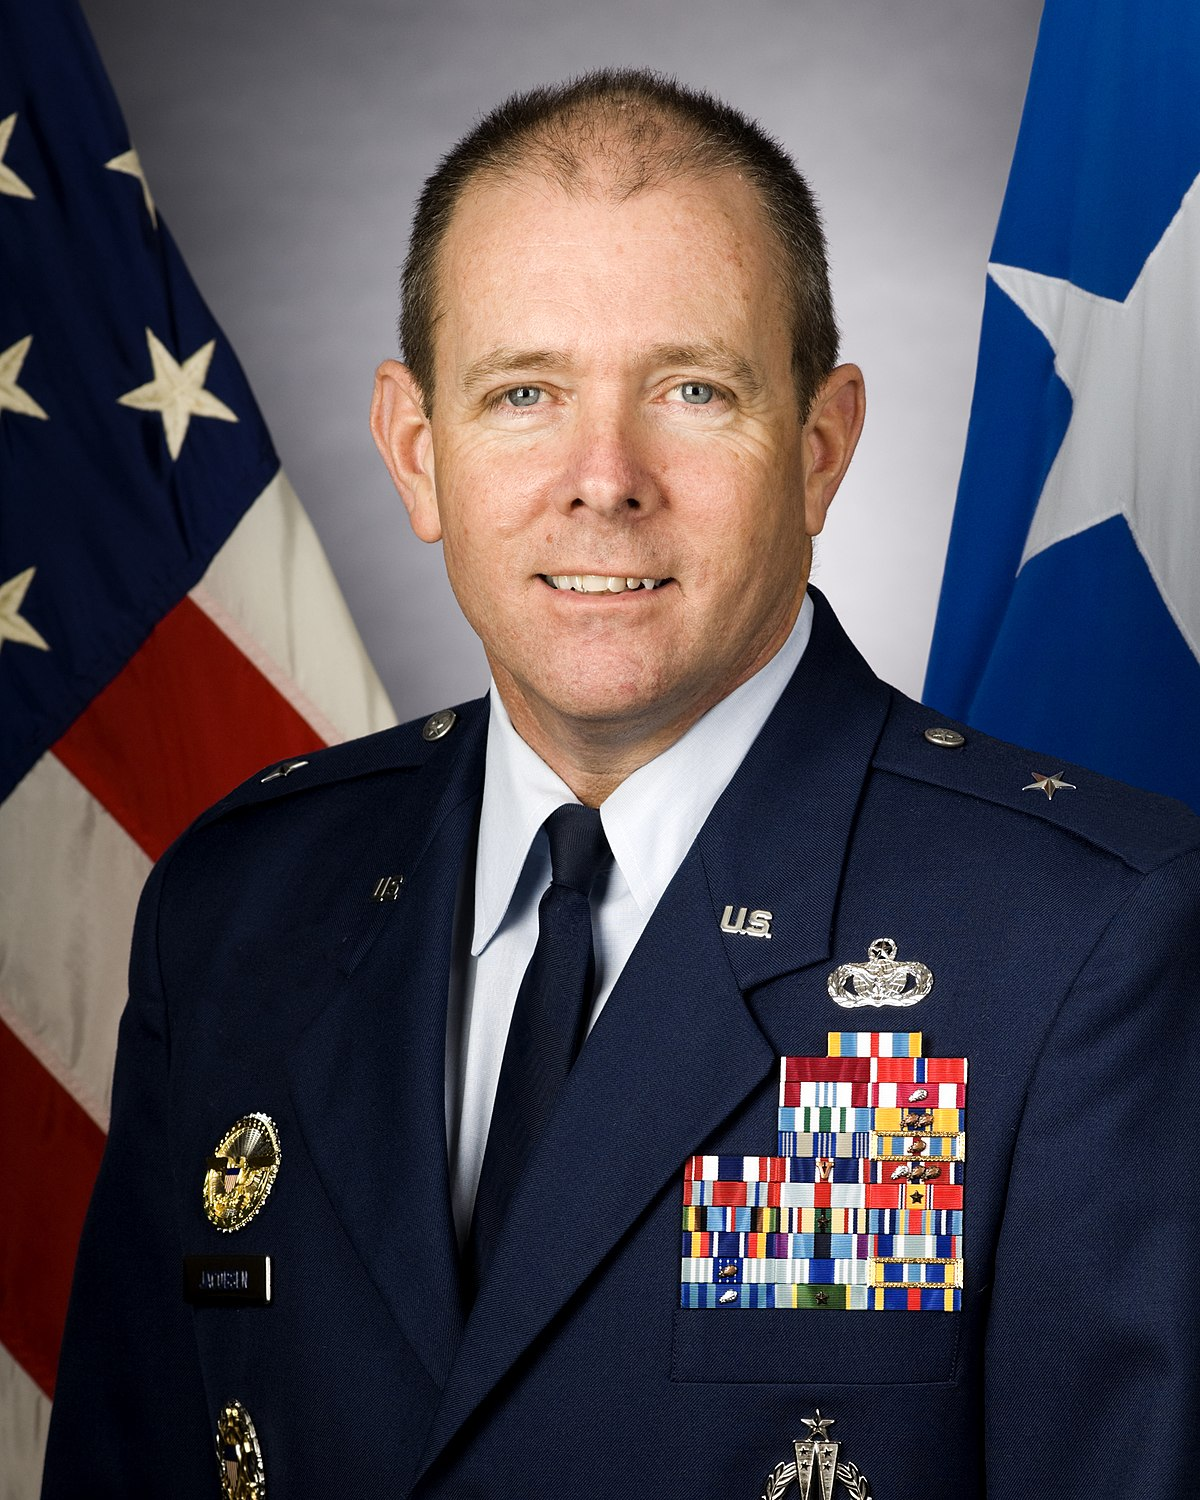 Kevin j jacobsen wikipedia - Air force office of special investigation ...